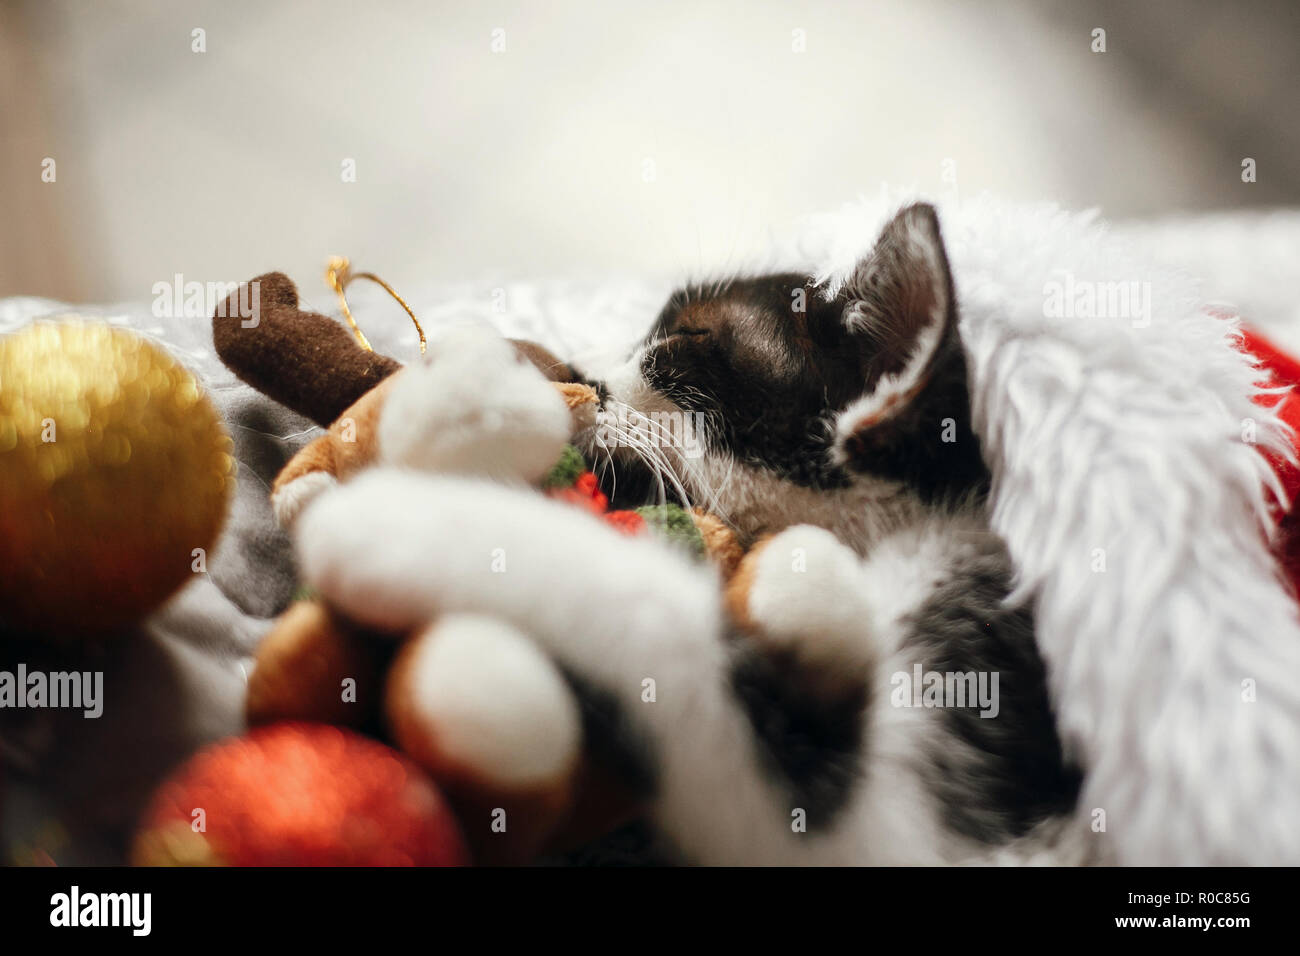 Cute kitty sleeping in santa hat on bed with gold and red christmas baubles in festive room. Merry Christmas concept. Adorable kitten napping with rei - Stock Image